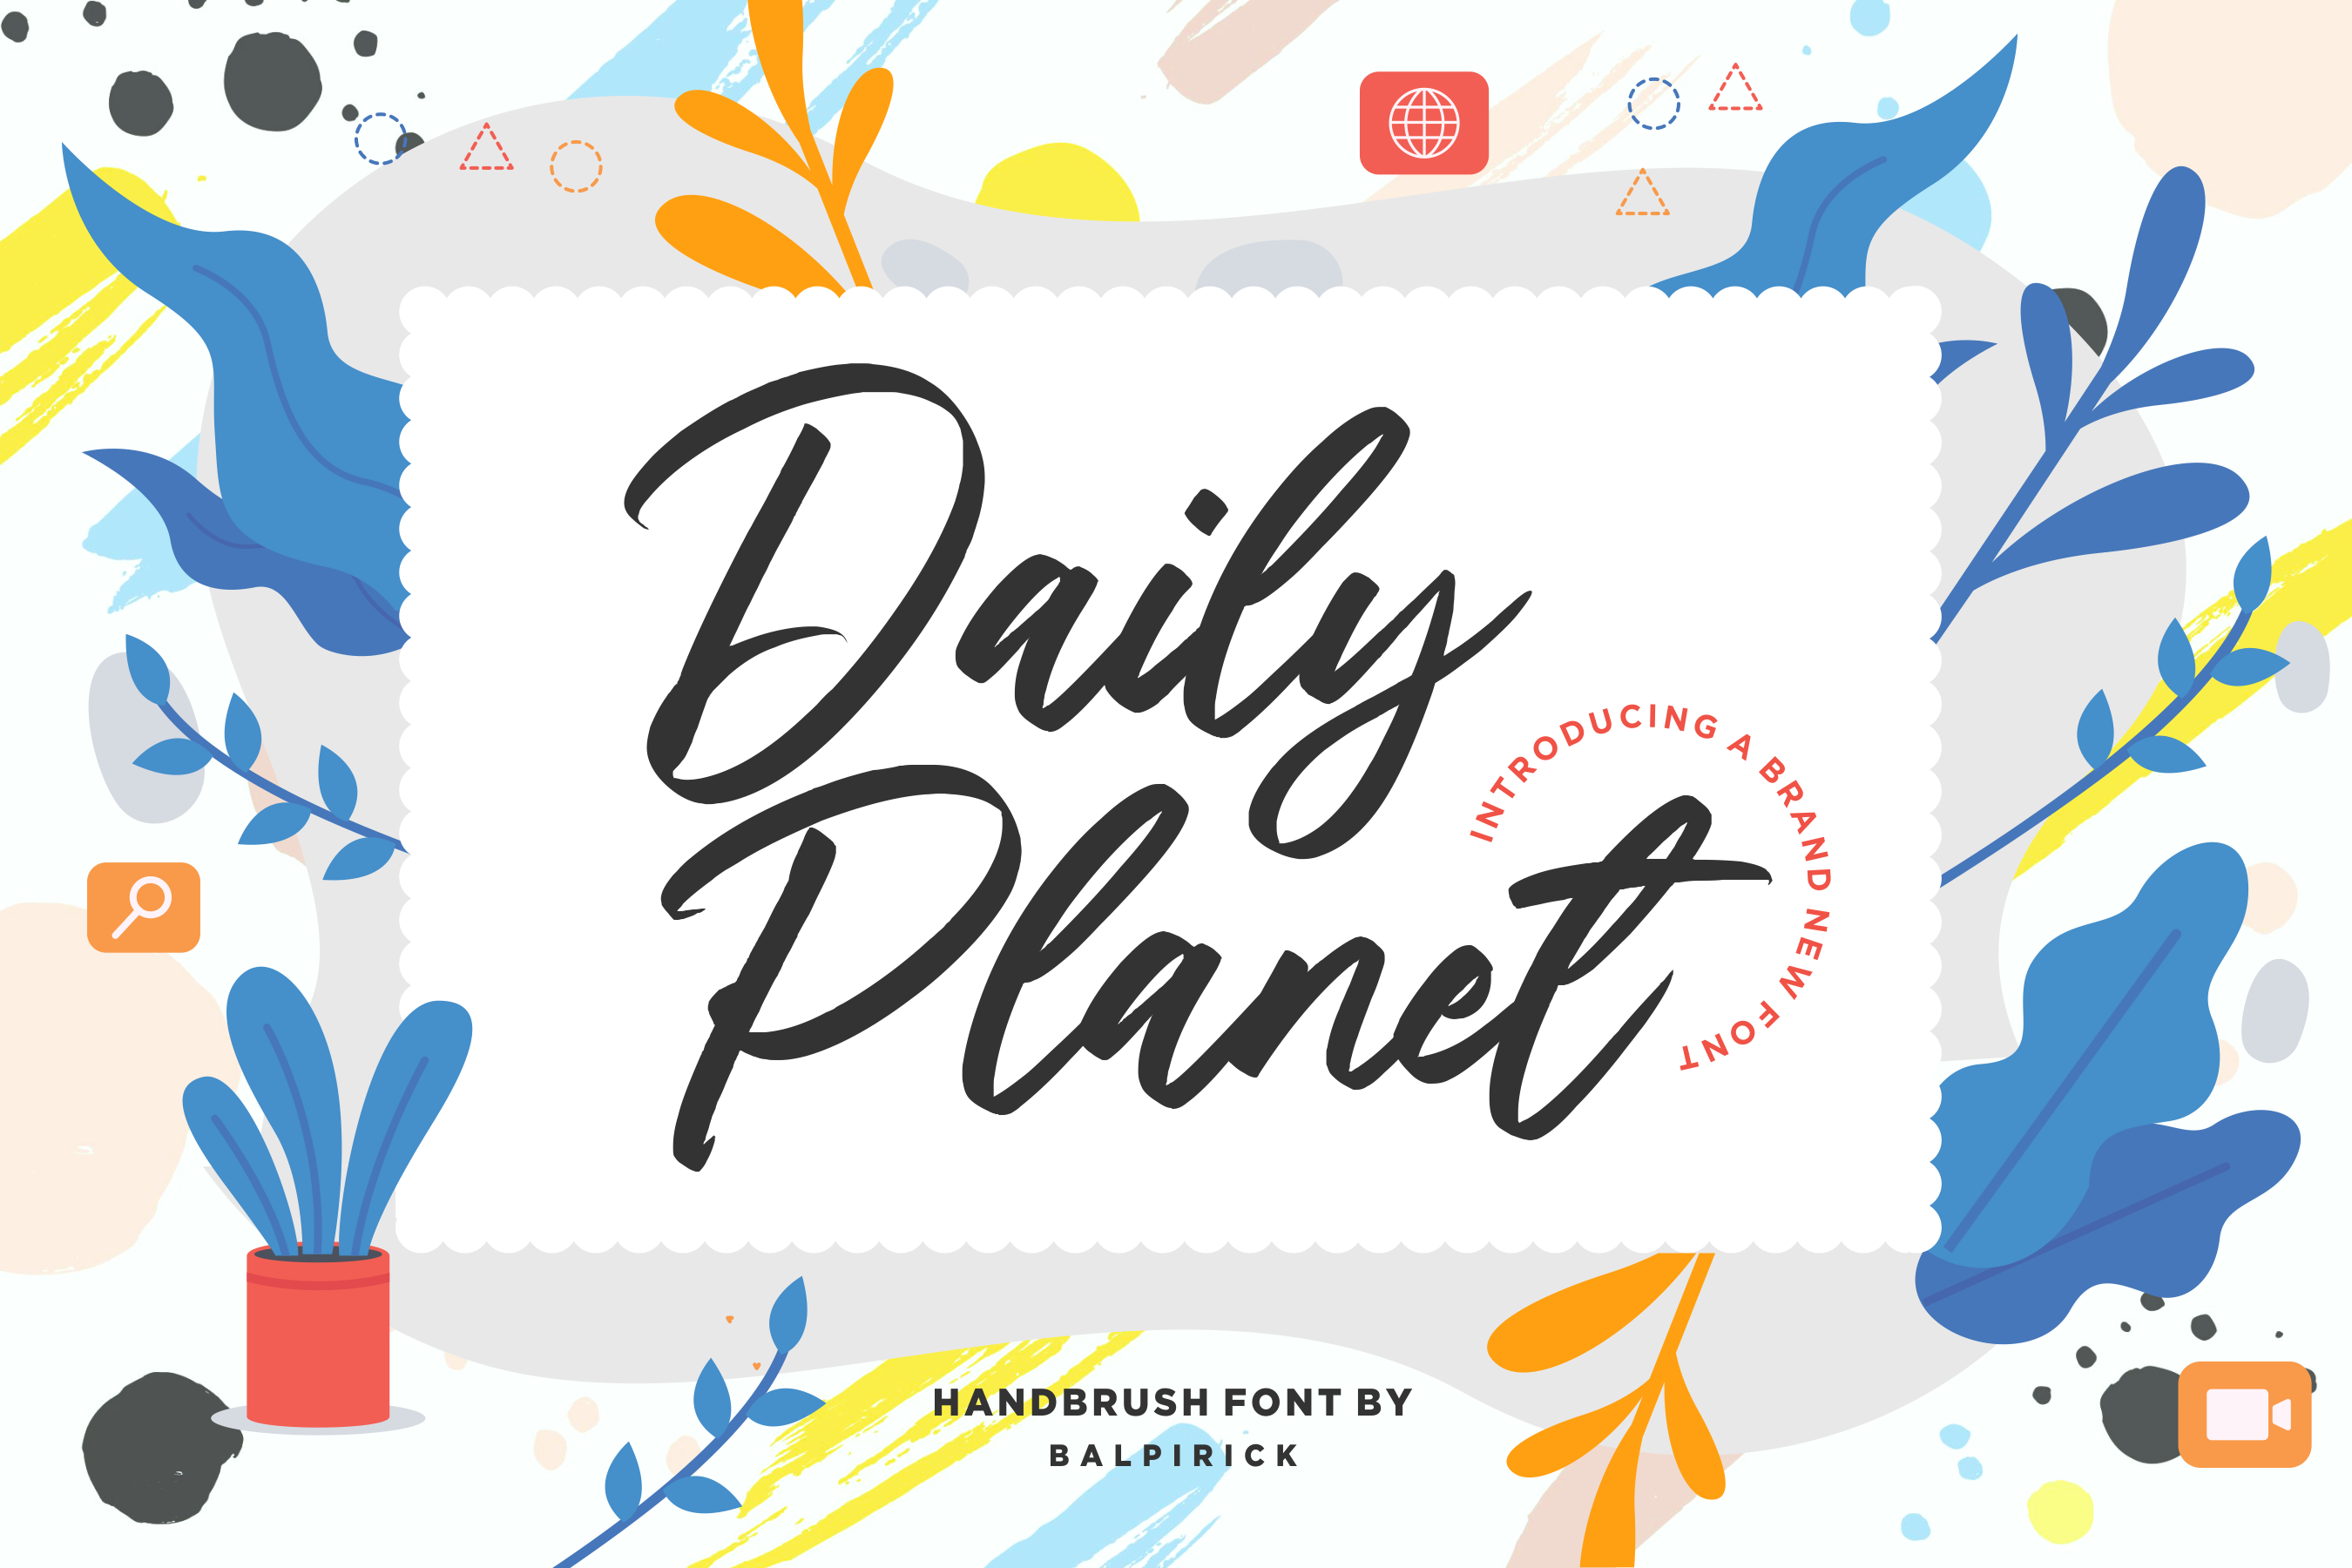 Download Free Daily Planet Font By Balpirick Creative Fabrica for Cricut Explore, Silhouette and other cutting machines.